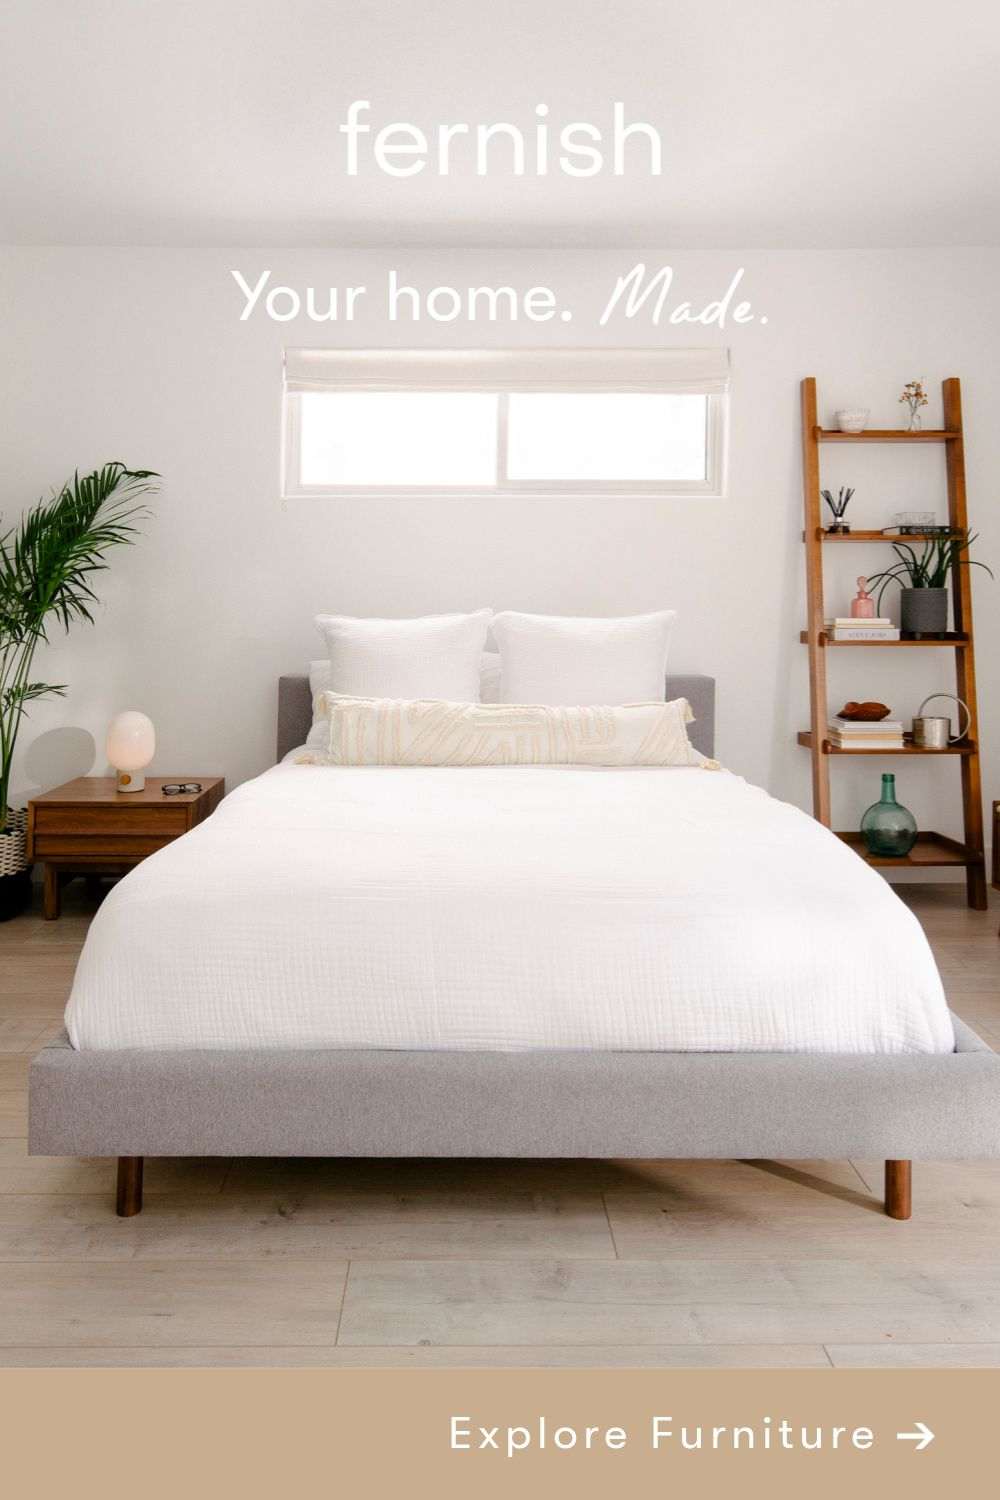 Beds Rugs Everything In 2020 Small Room Bedroom Shabby Chic Bedroom Furniture Dorm Room Inspiration